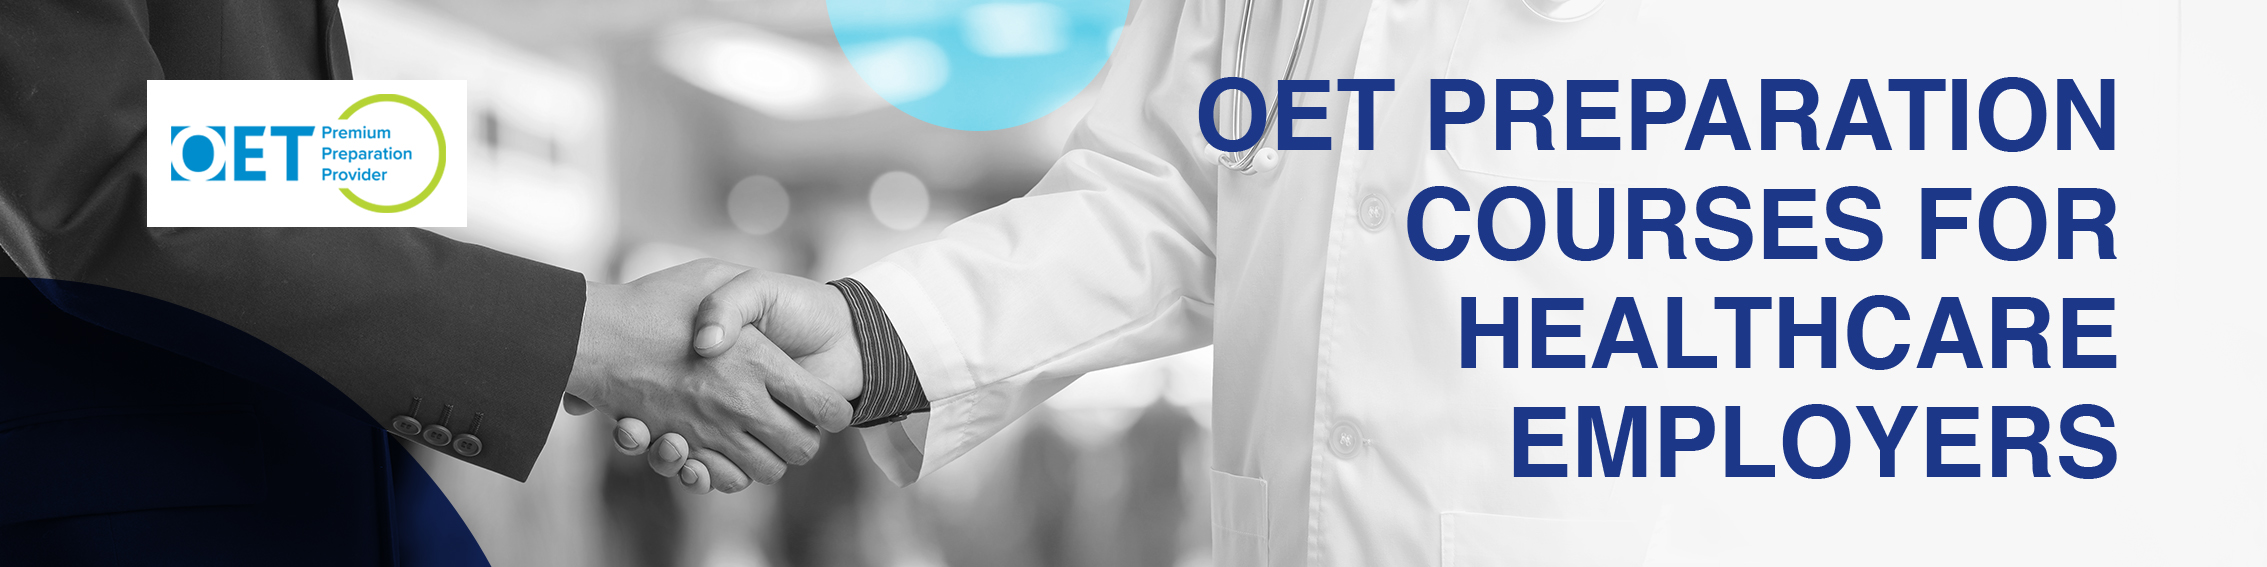 OET Preparation for Healthcare Employers